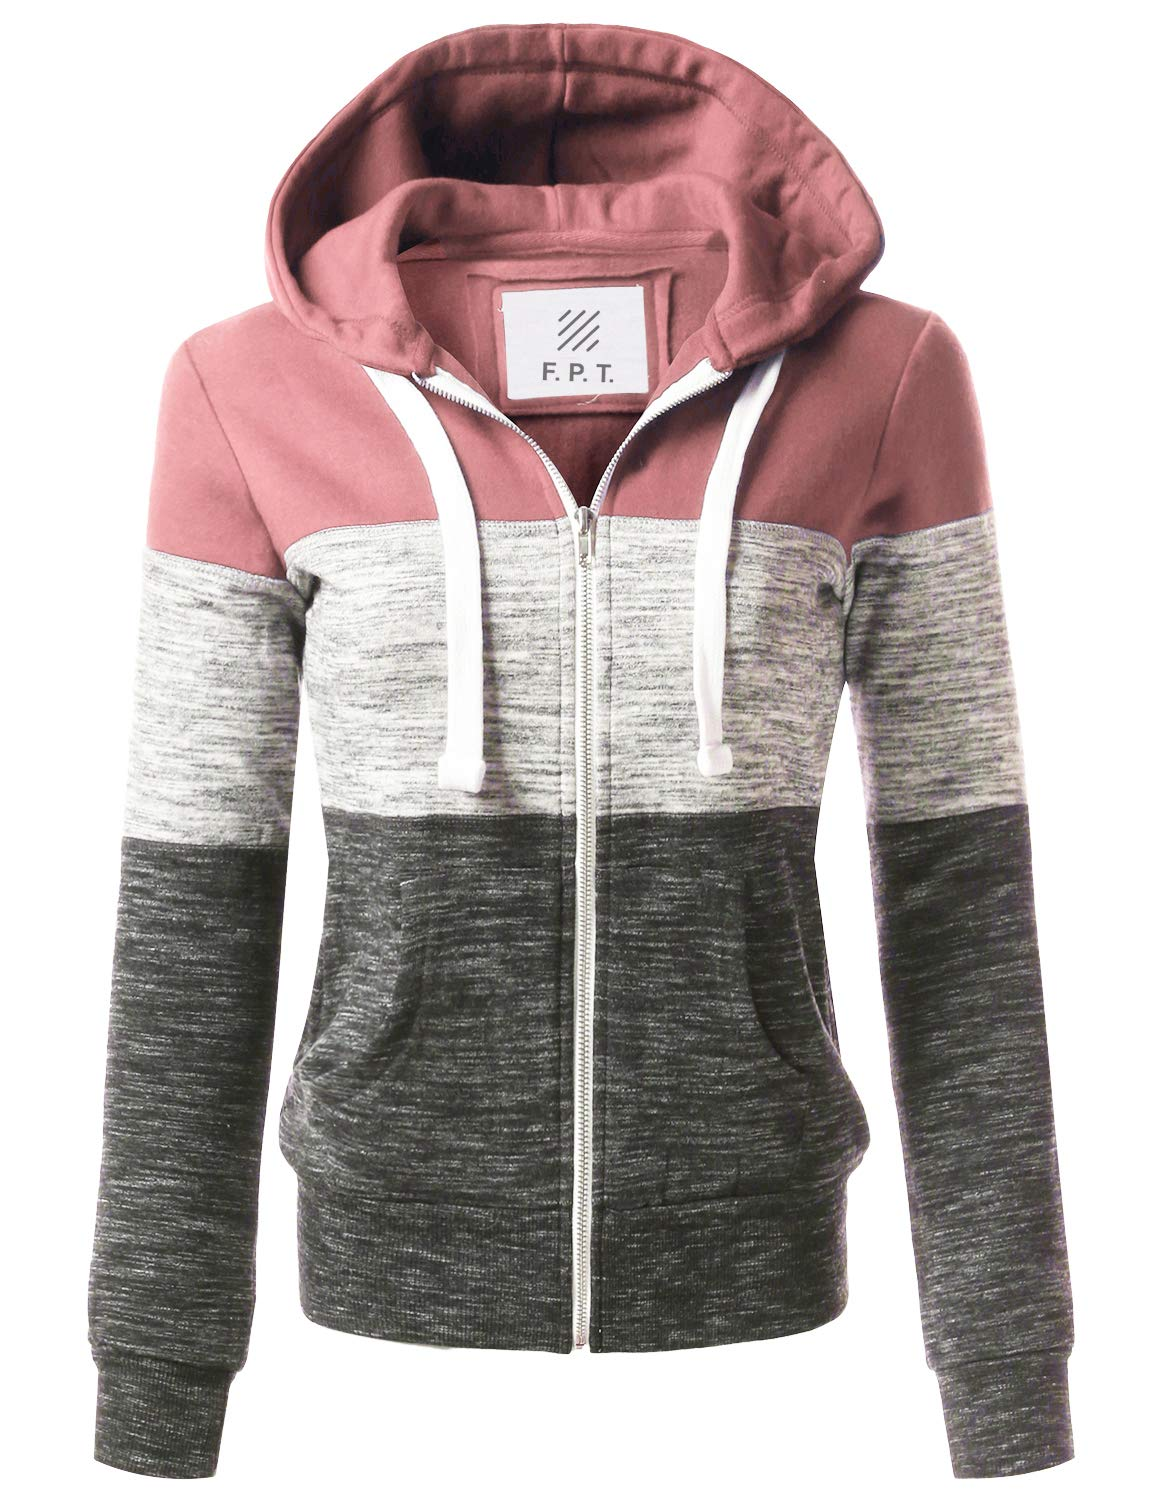 Fifth Parallel Threads FPT Women's Color Block